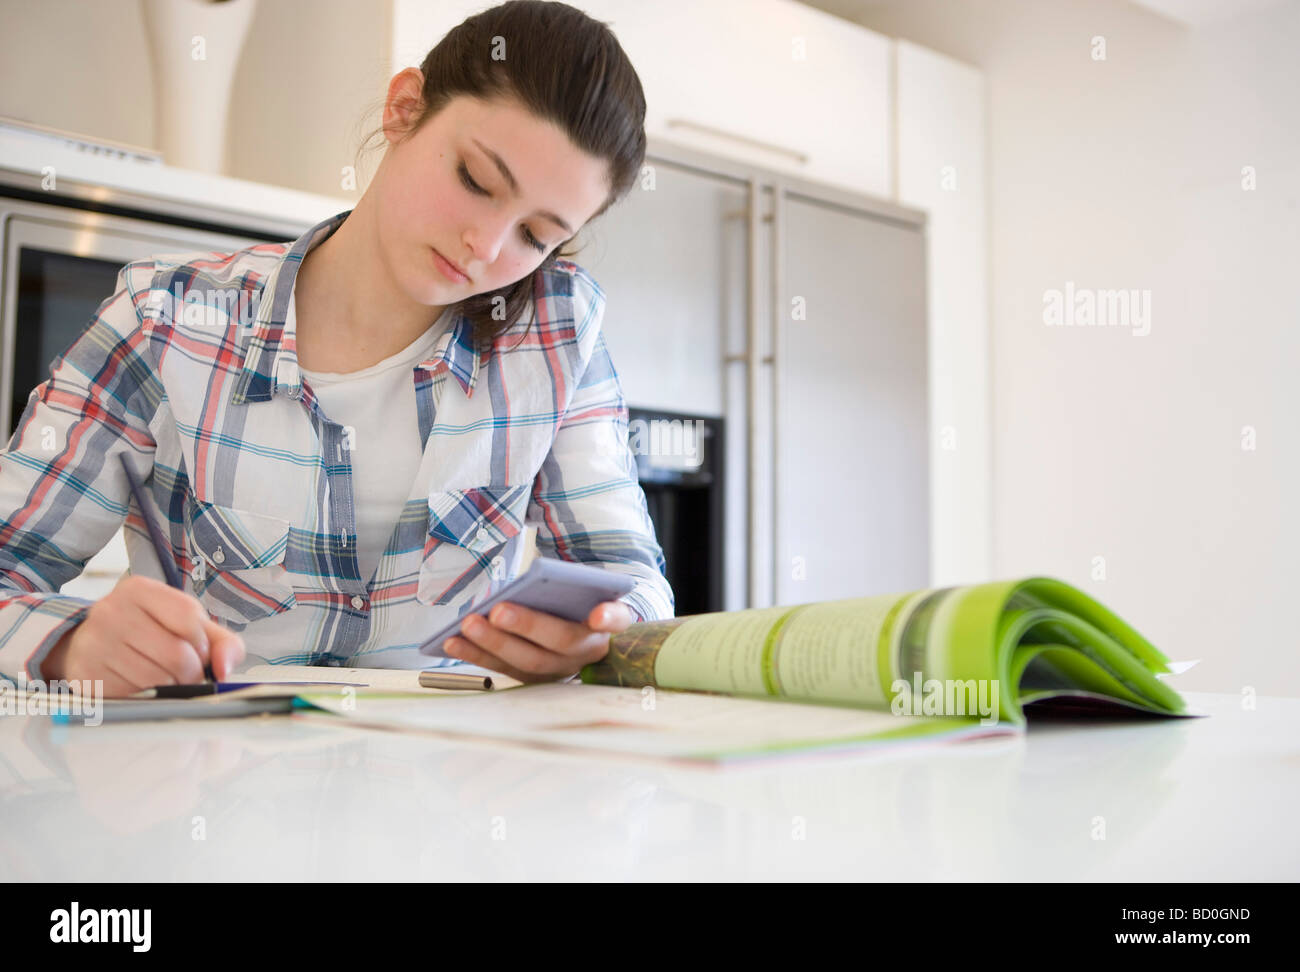 Girl 14, studying at home - Stock Image